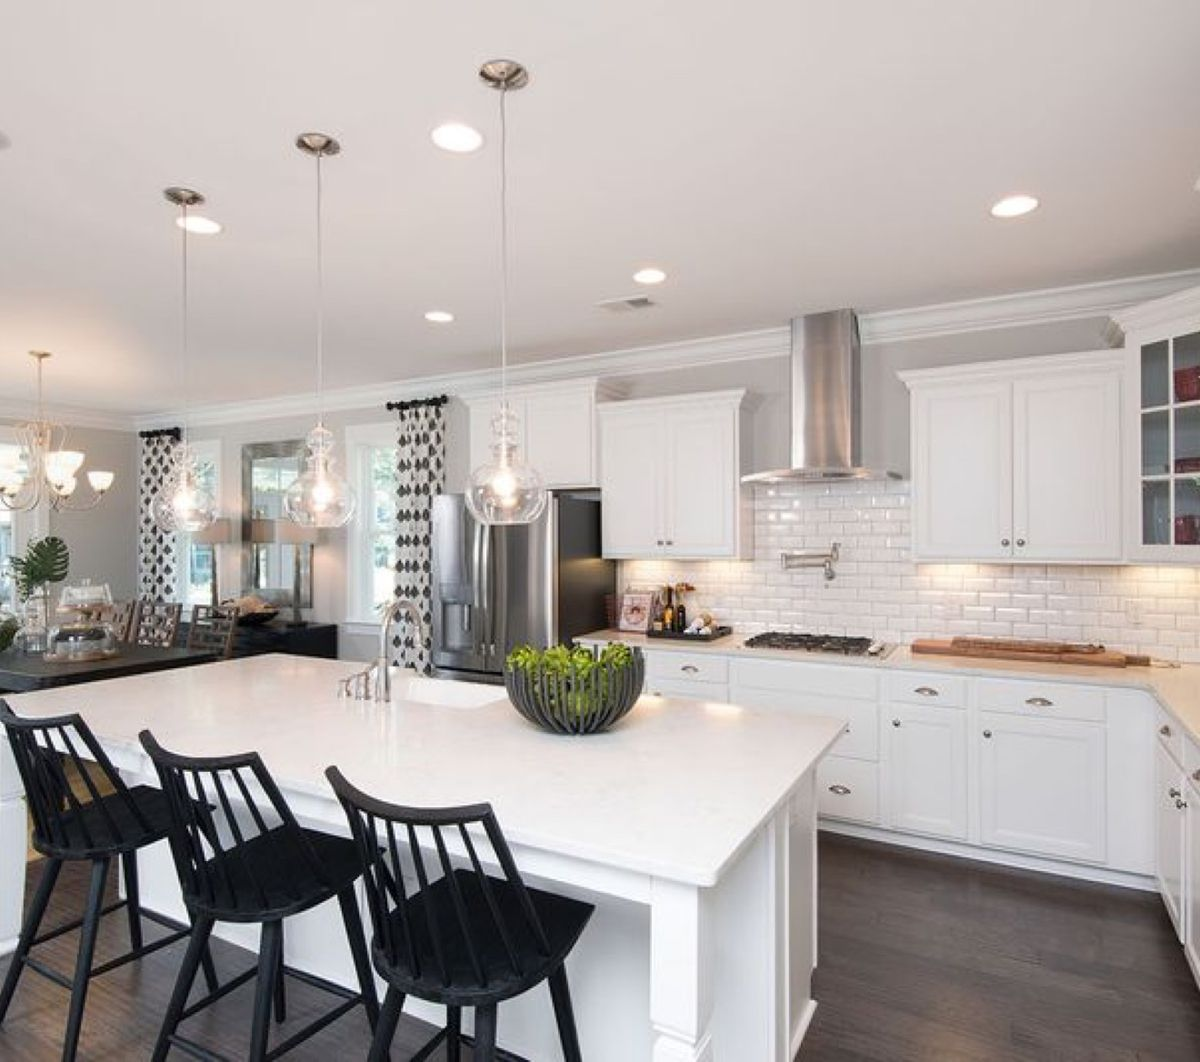 New home kitchen with white subway tile